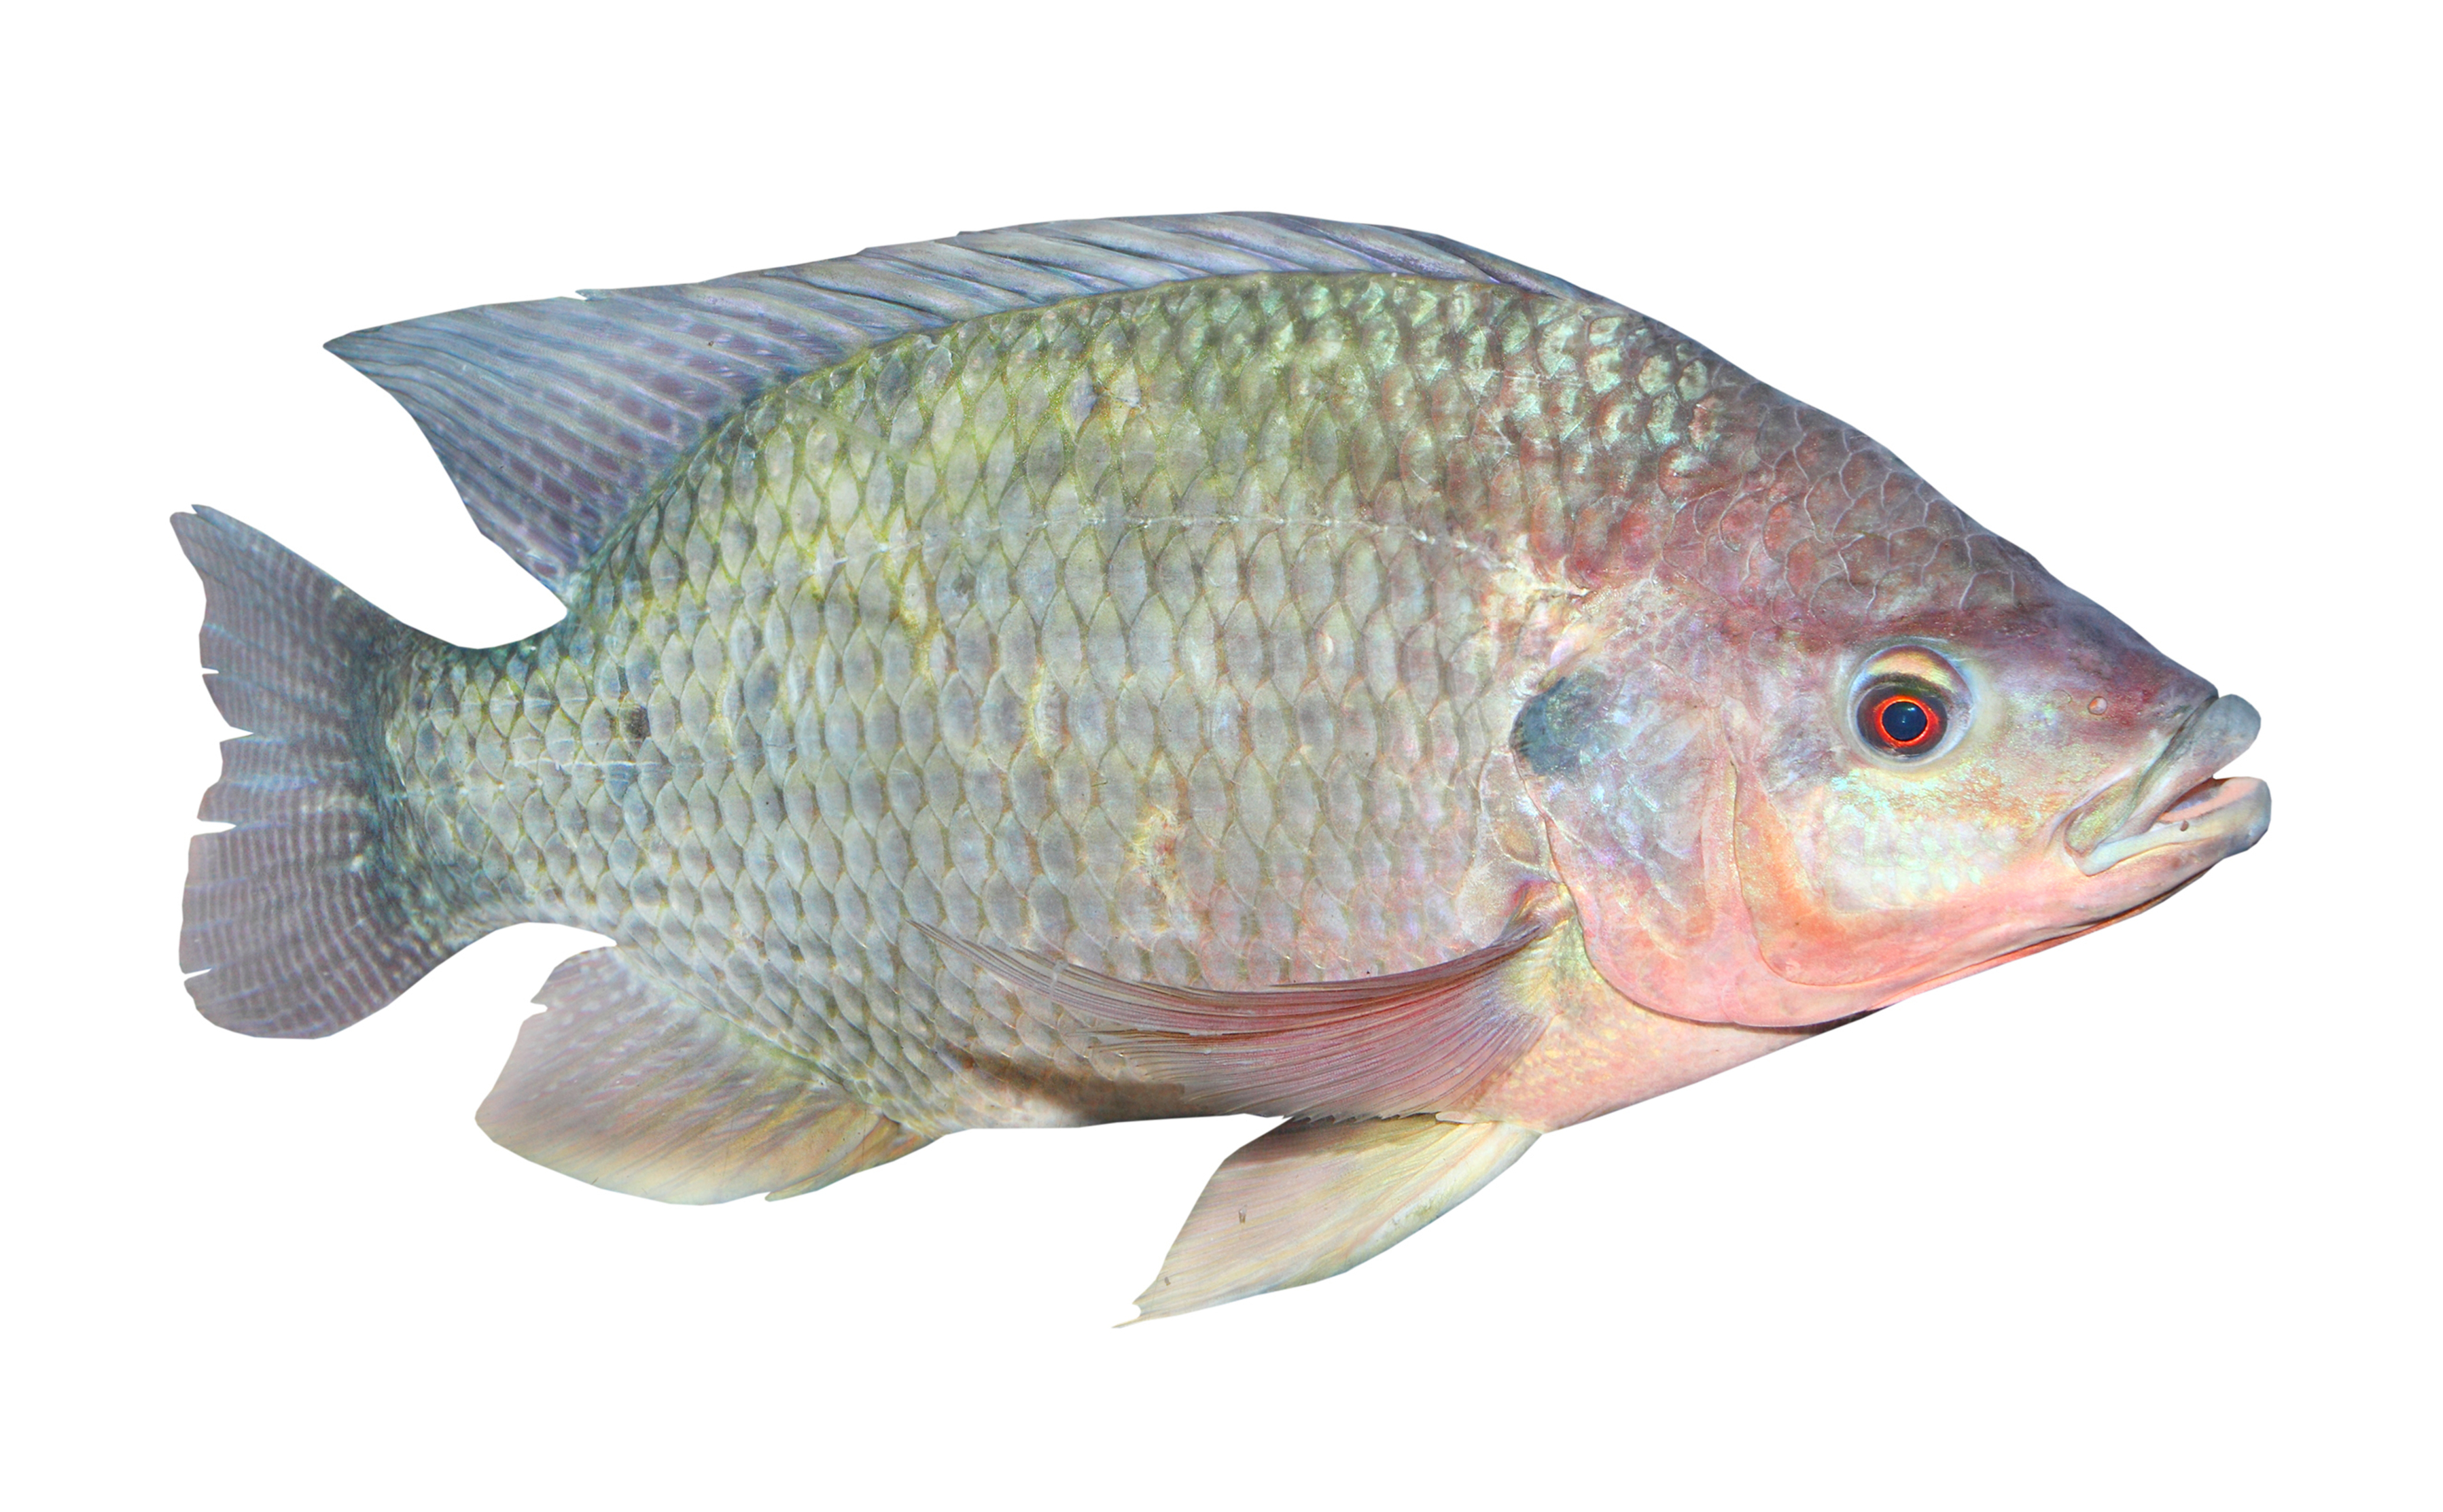 Americas tilapia alliance successor entity to the former for What type of fish is tilapia